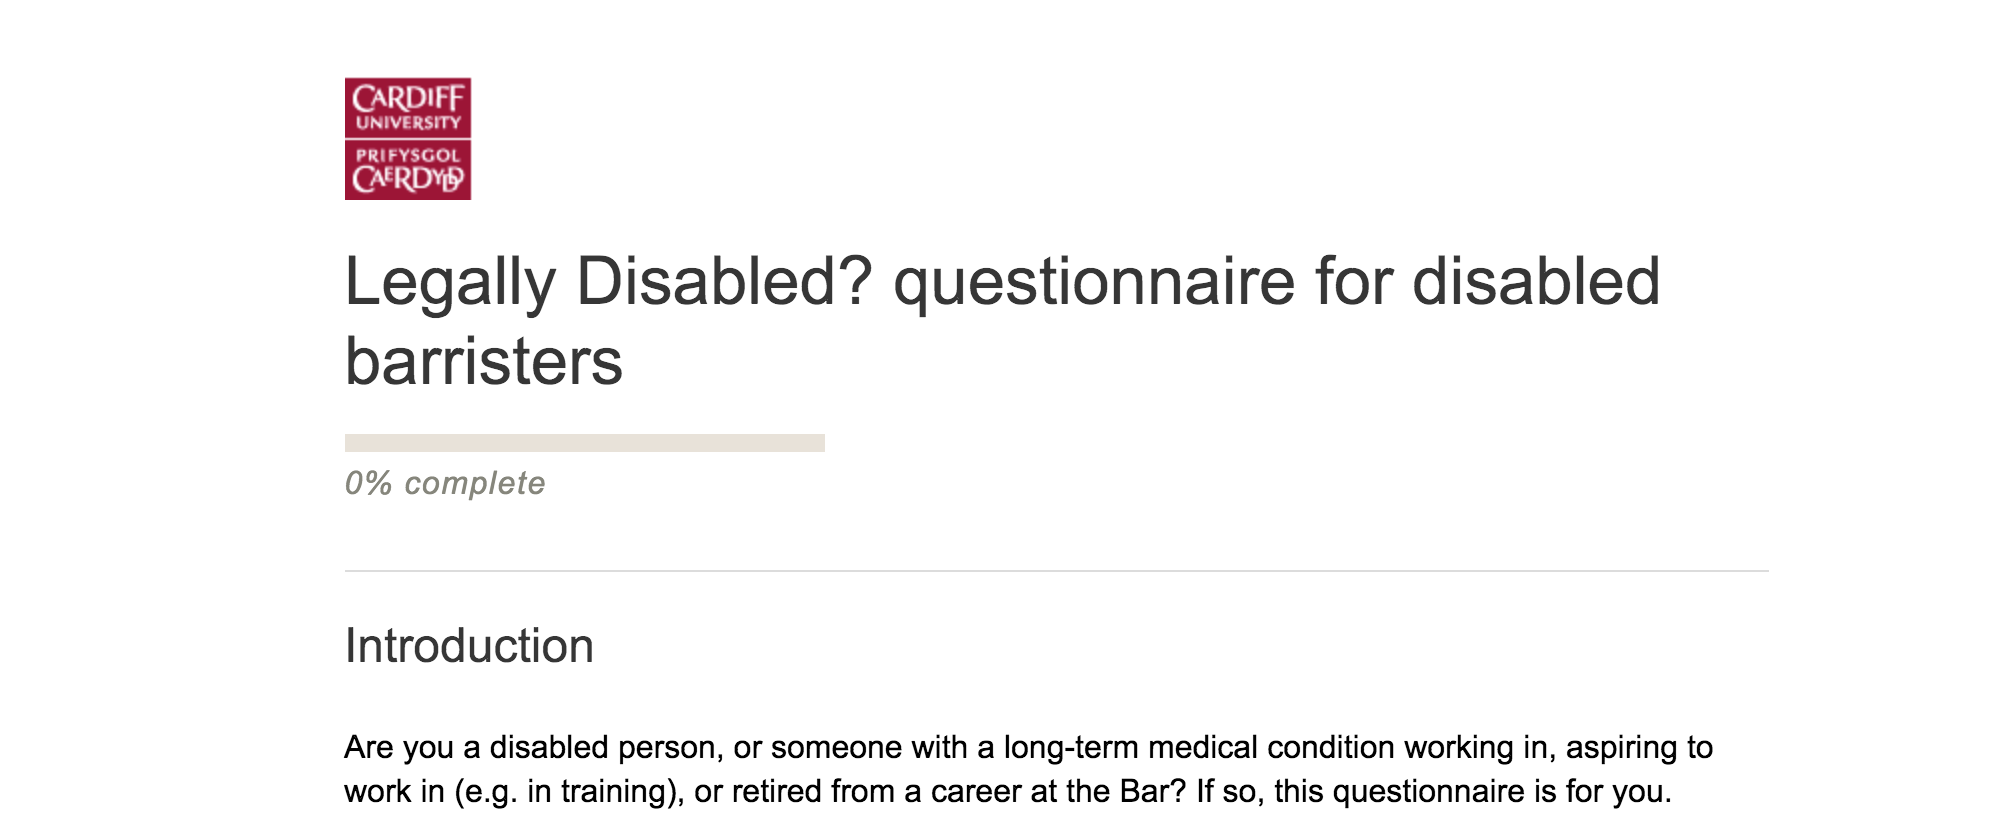 screenshot of the questionnaire for disabled barristers